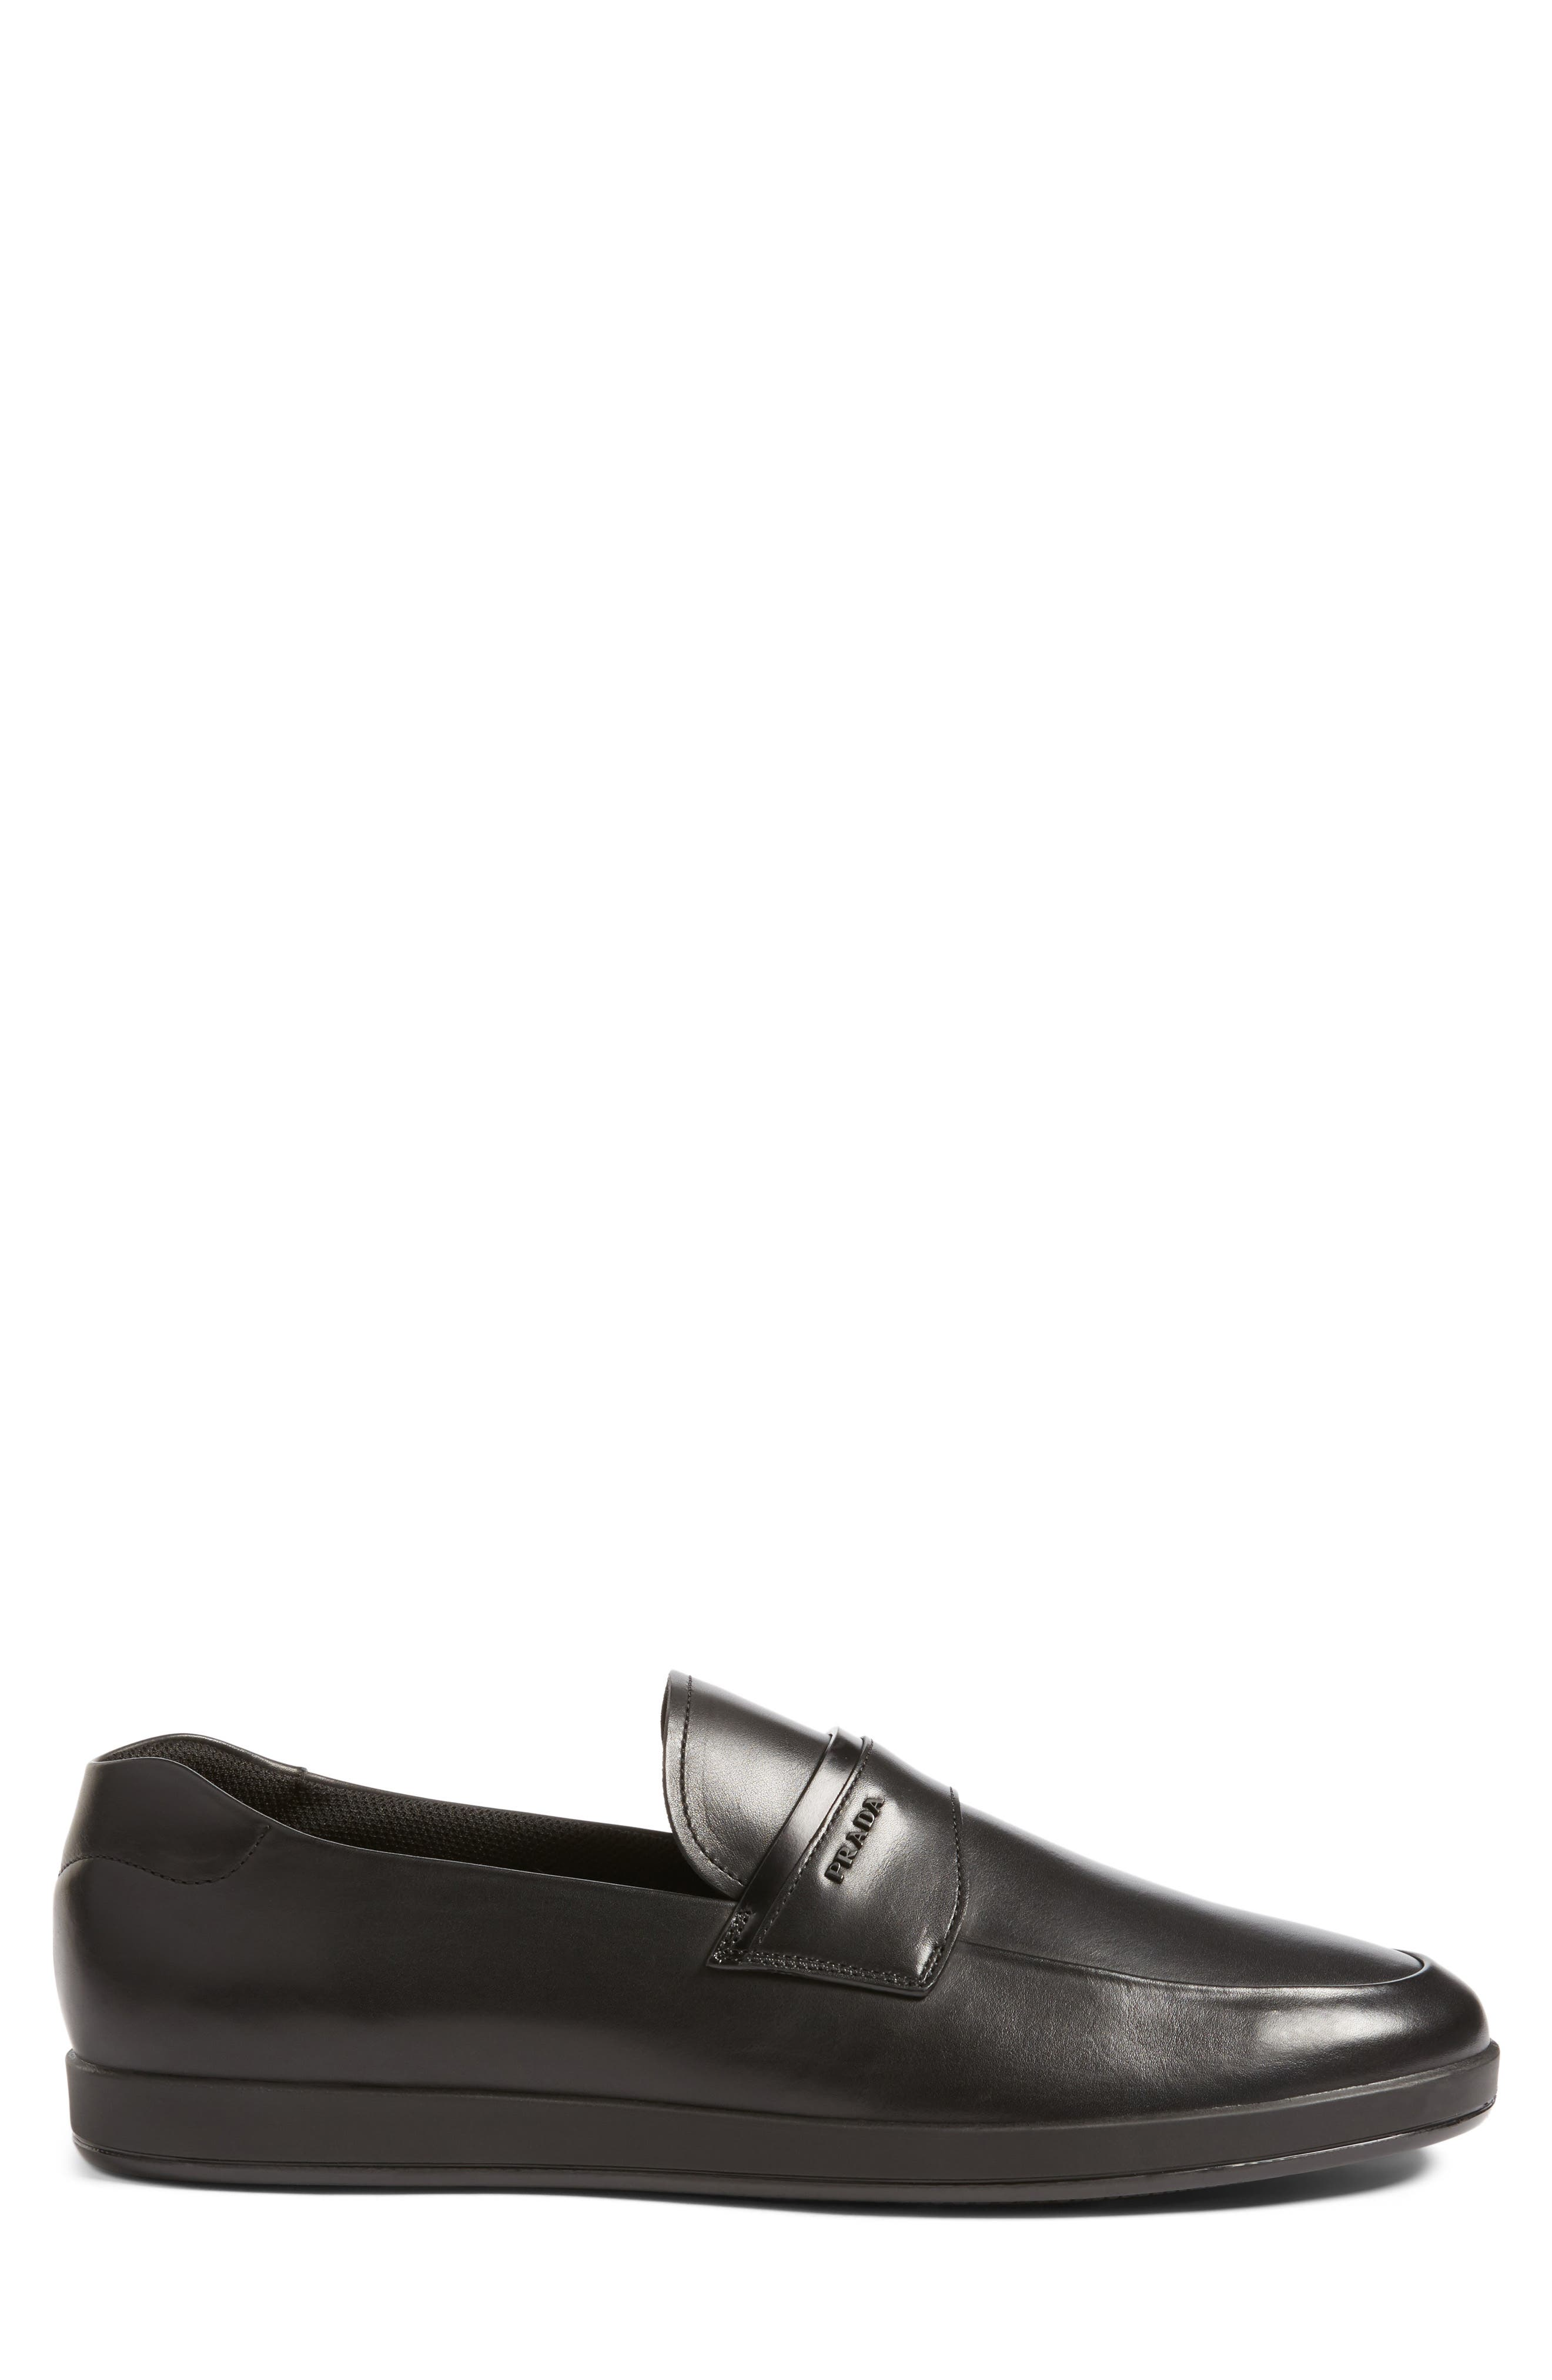 Toblac Penny Loafer,                             Alternate thumbnail 3, color,                             001